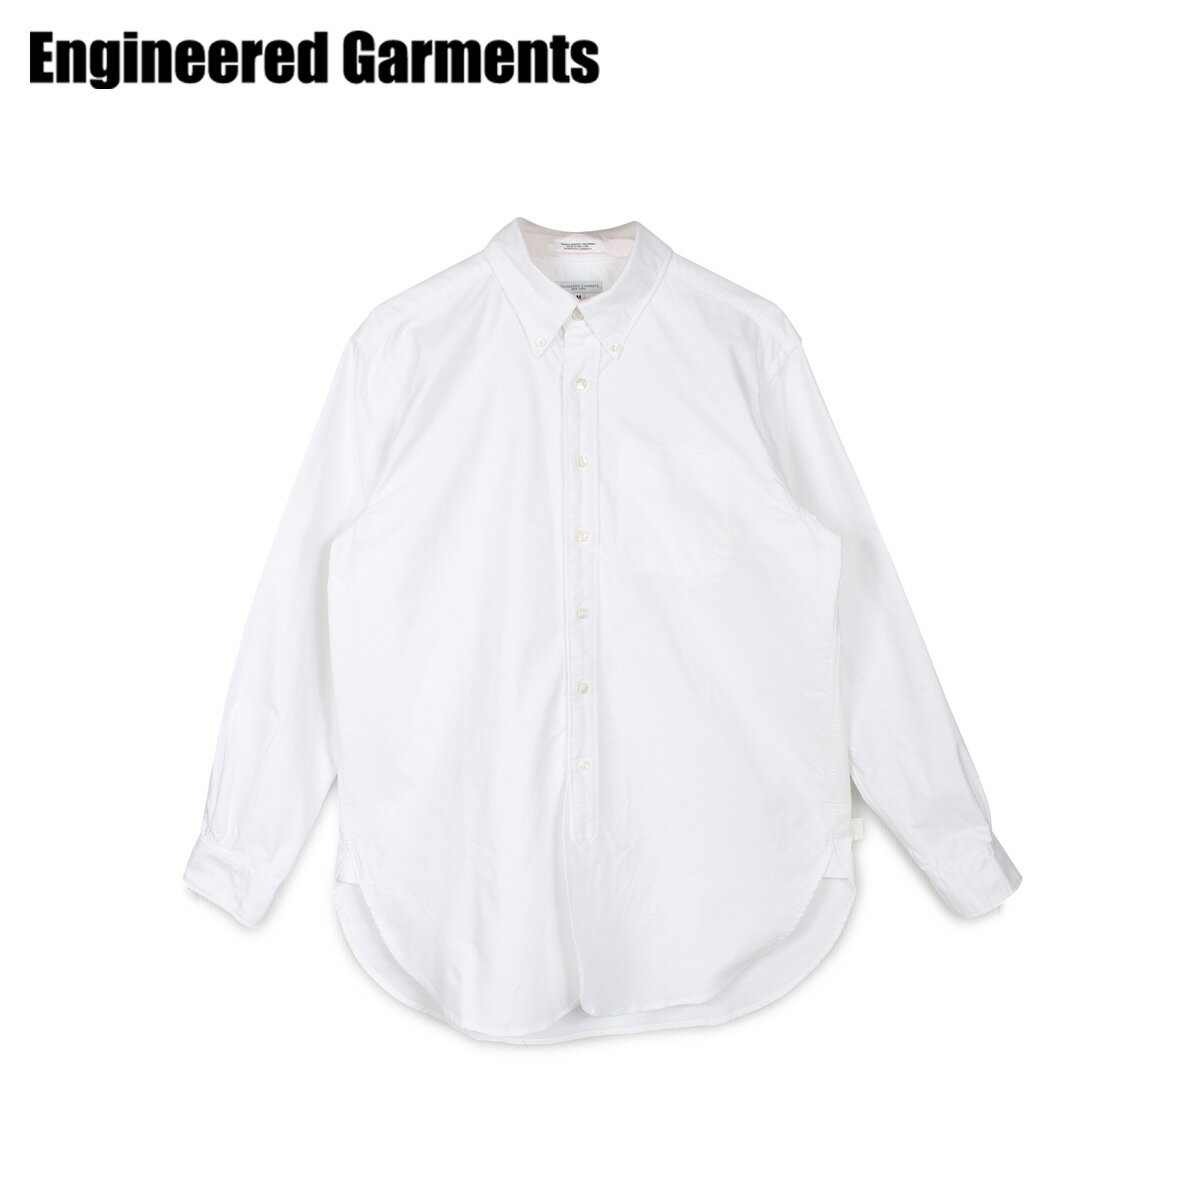 トップス, カジュアルシャツ 2000OFF ENGINEERED GARMENTS 19 CENTURY BD SHIRT 20S1A001 20F1A001